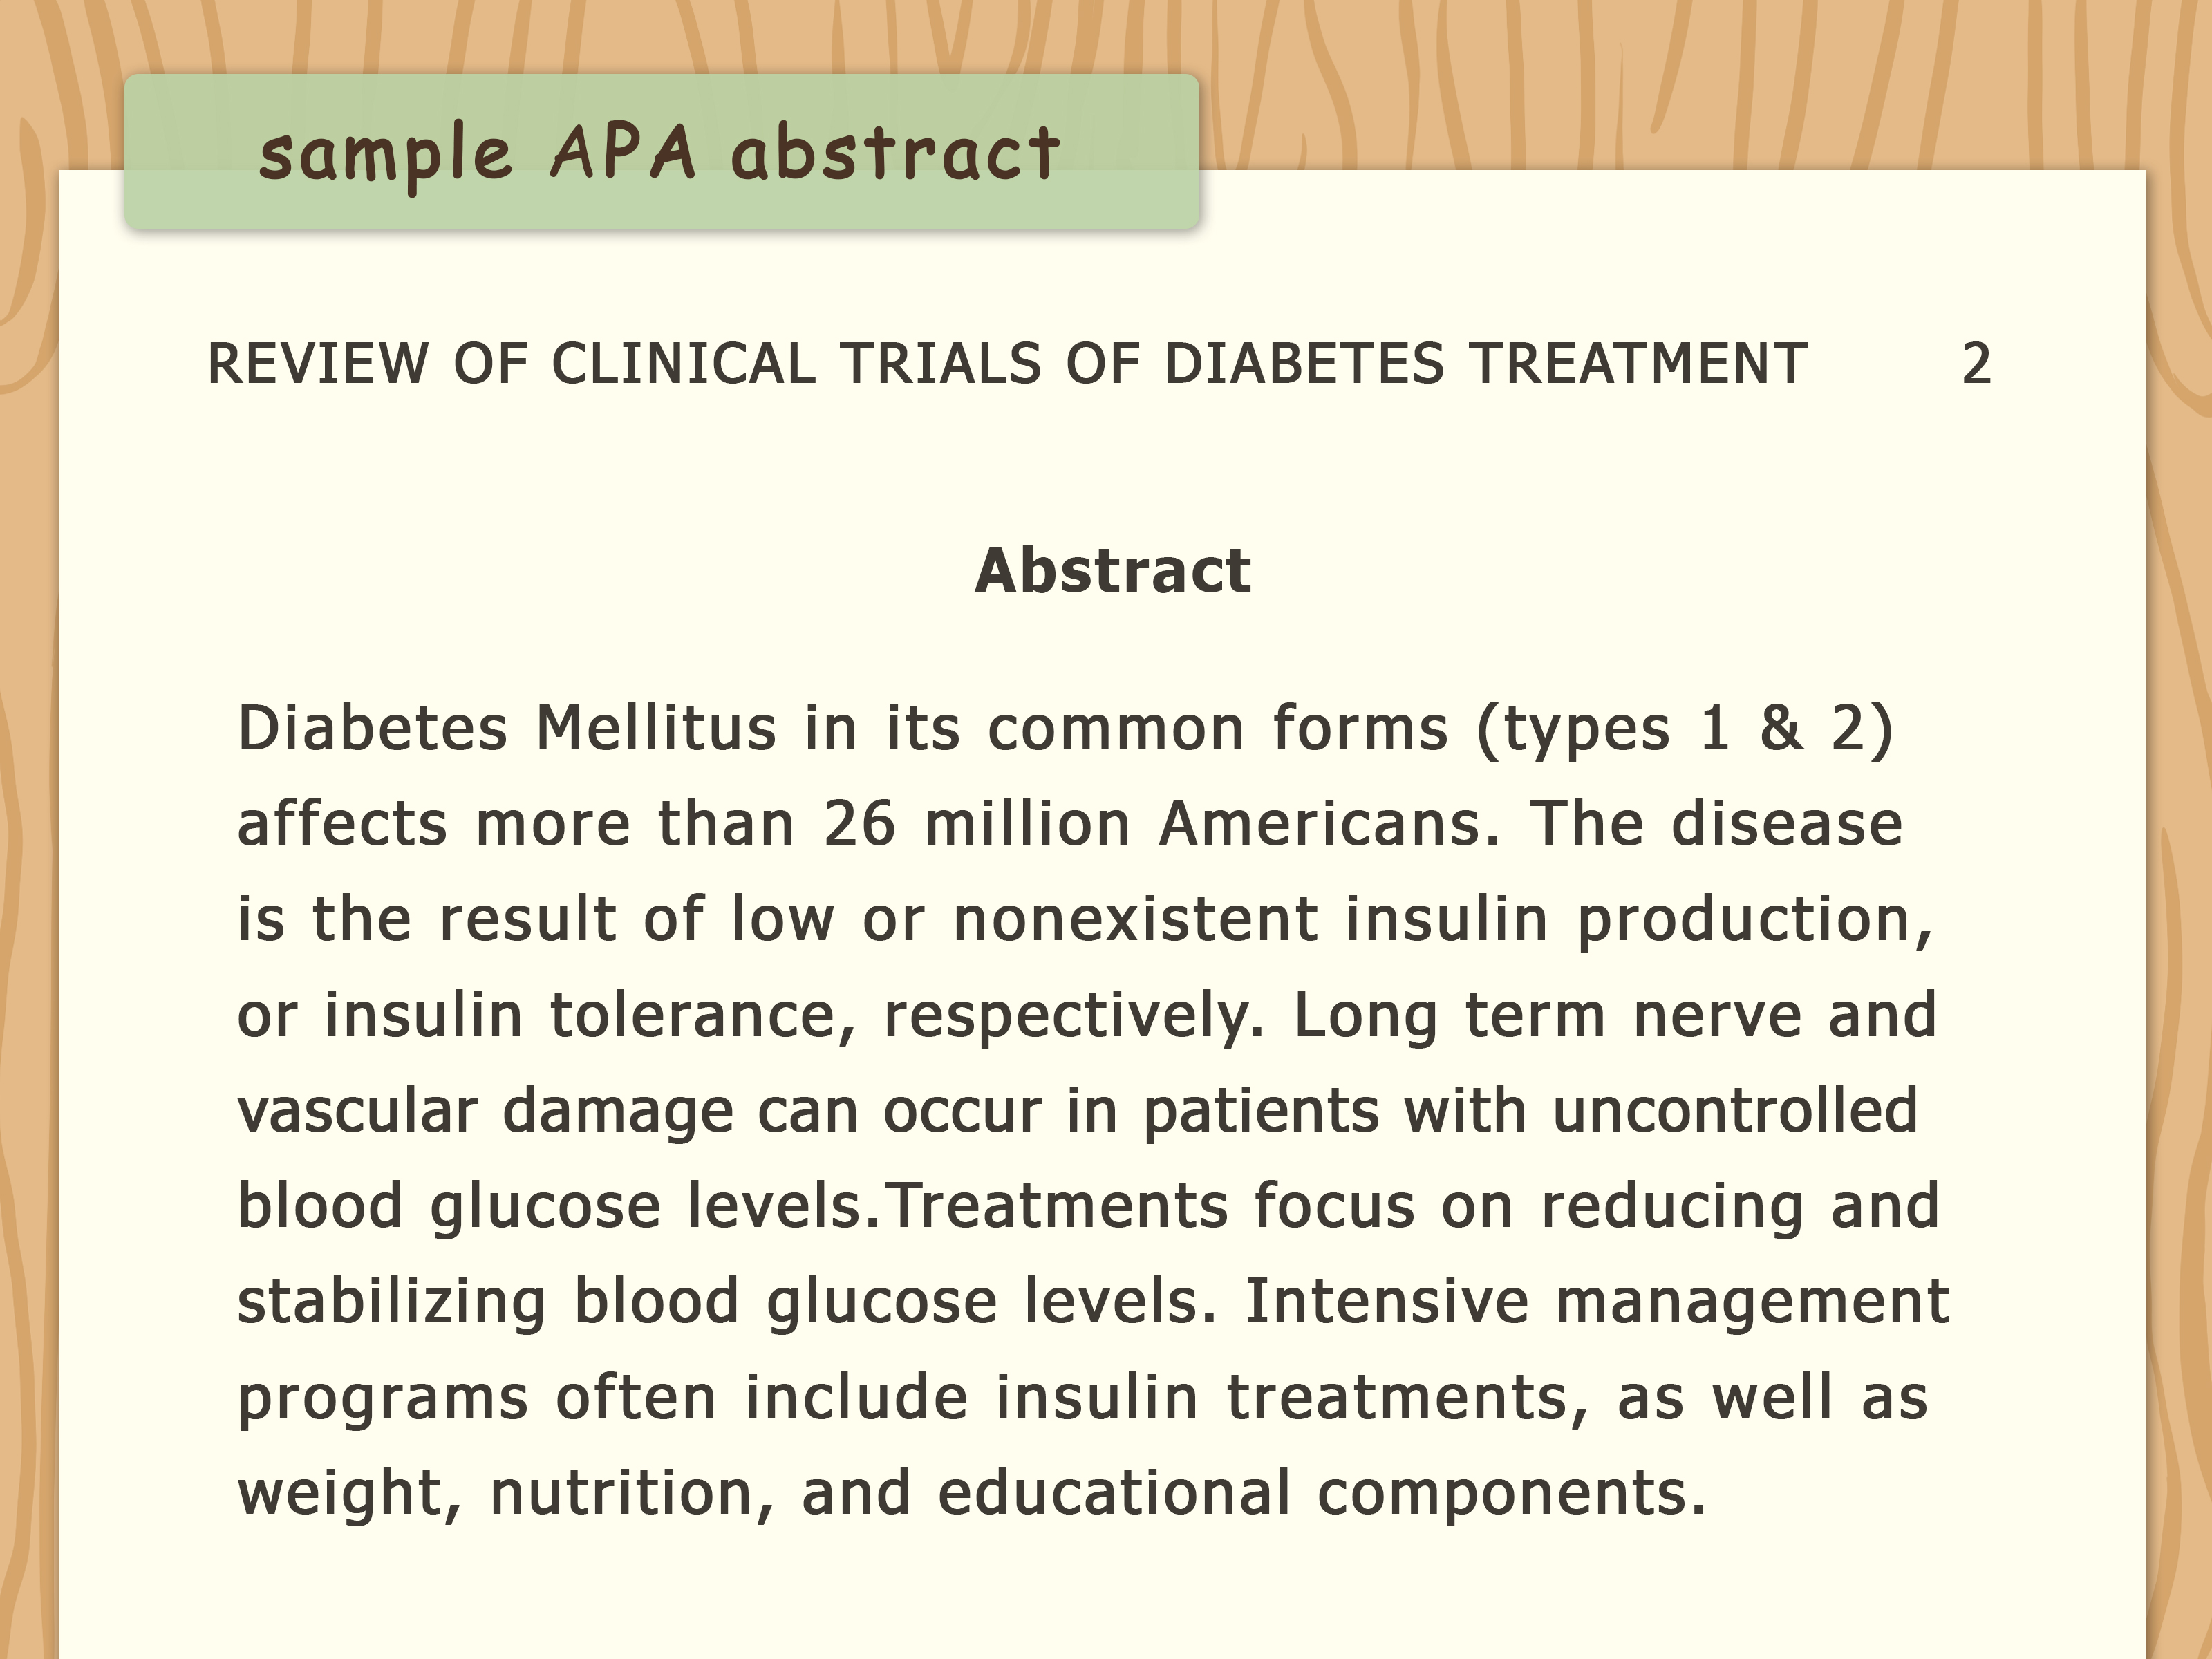 001 Diabetes Research Paper Apa Format Write An Style Step Version Stirring Full